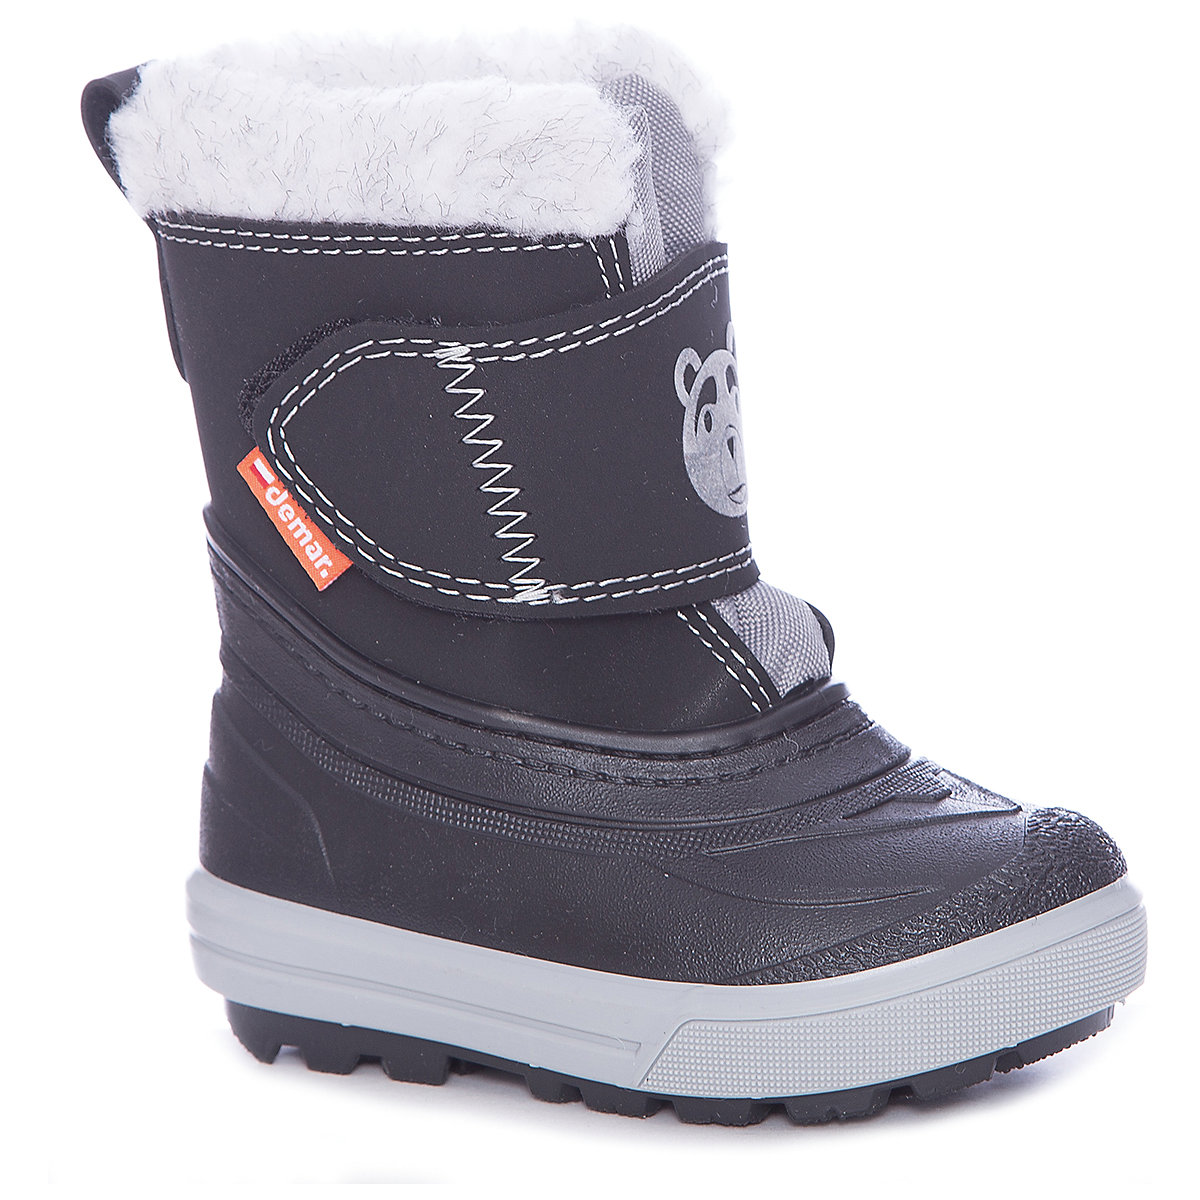 Boots Demar For Boys And Girls 7134870 Valenki Uggi Winter Baby Kids Children Shoes MTpromo